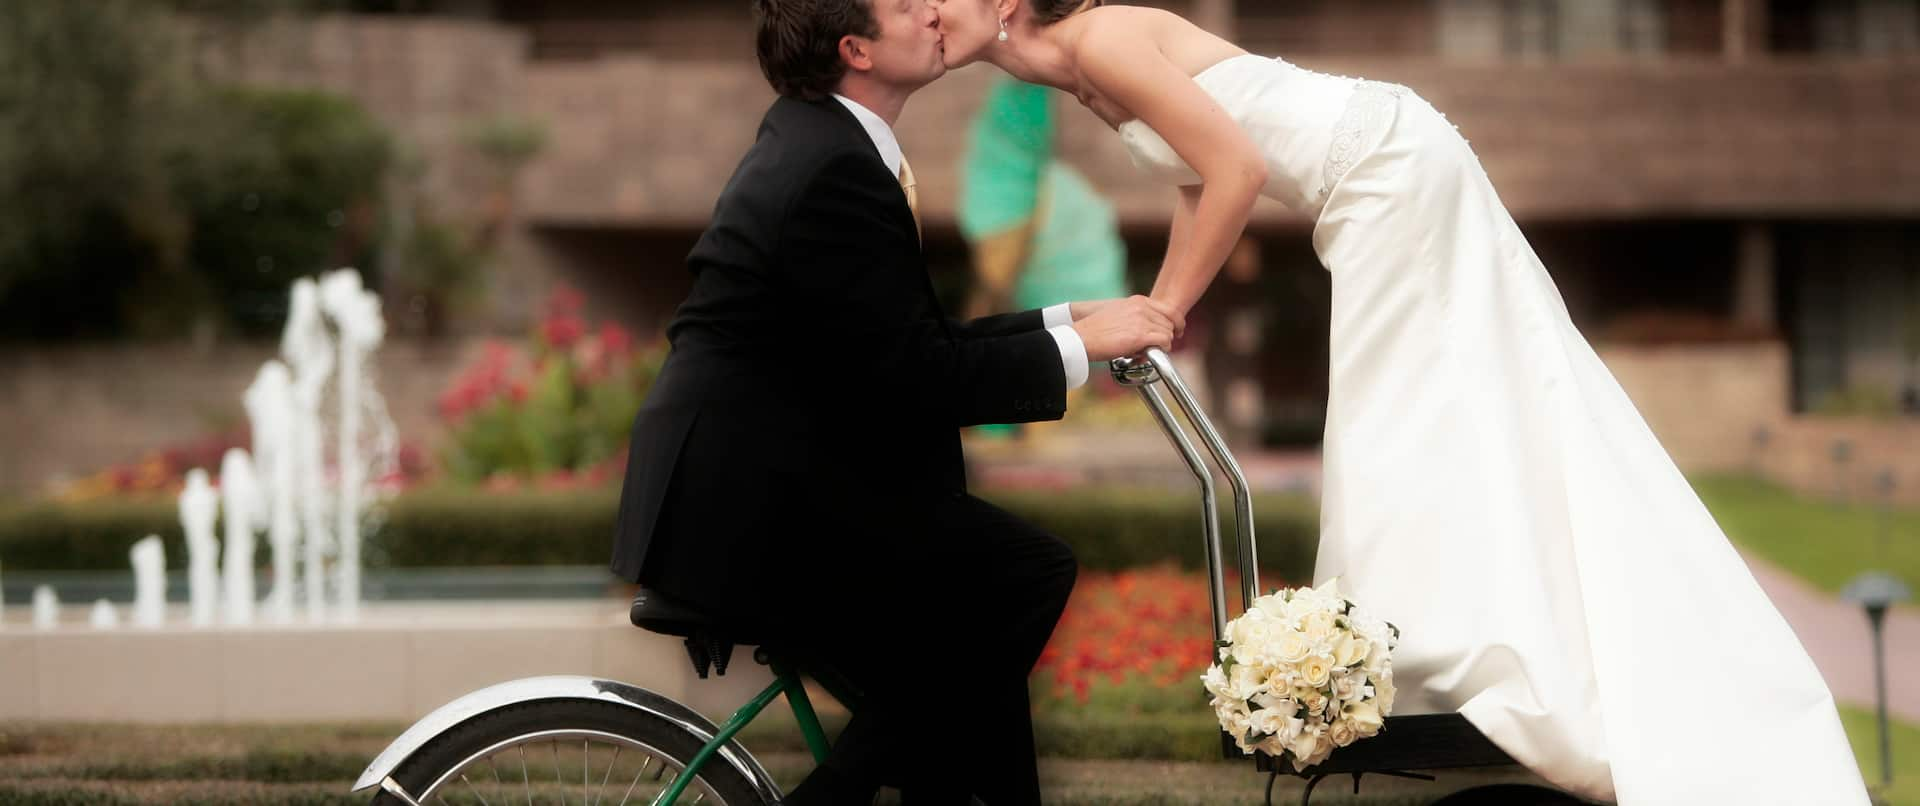 Wedding Kiss on Bicycle in color